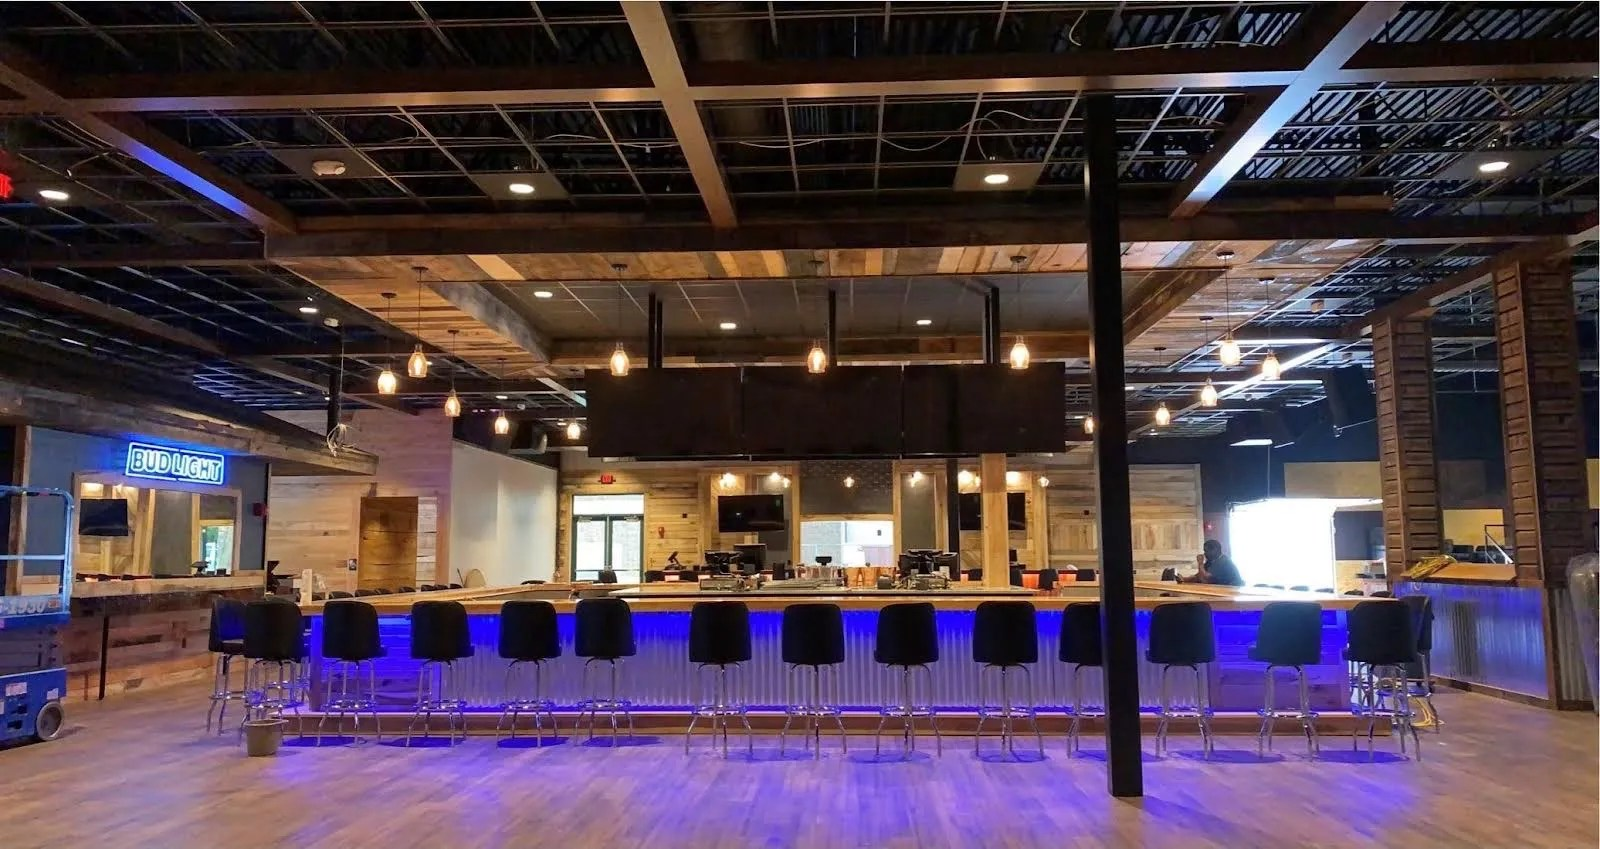 The interior of Lori's Roadhouse, a new restaurant, bar and live music venue in West Chester.